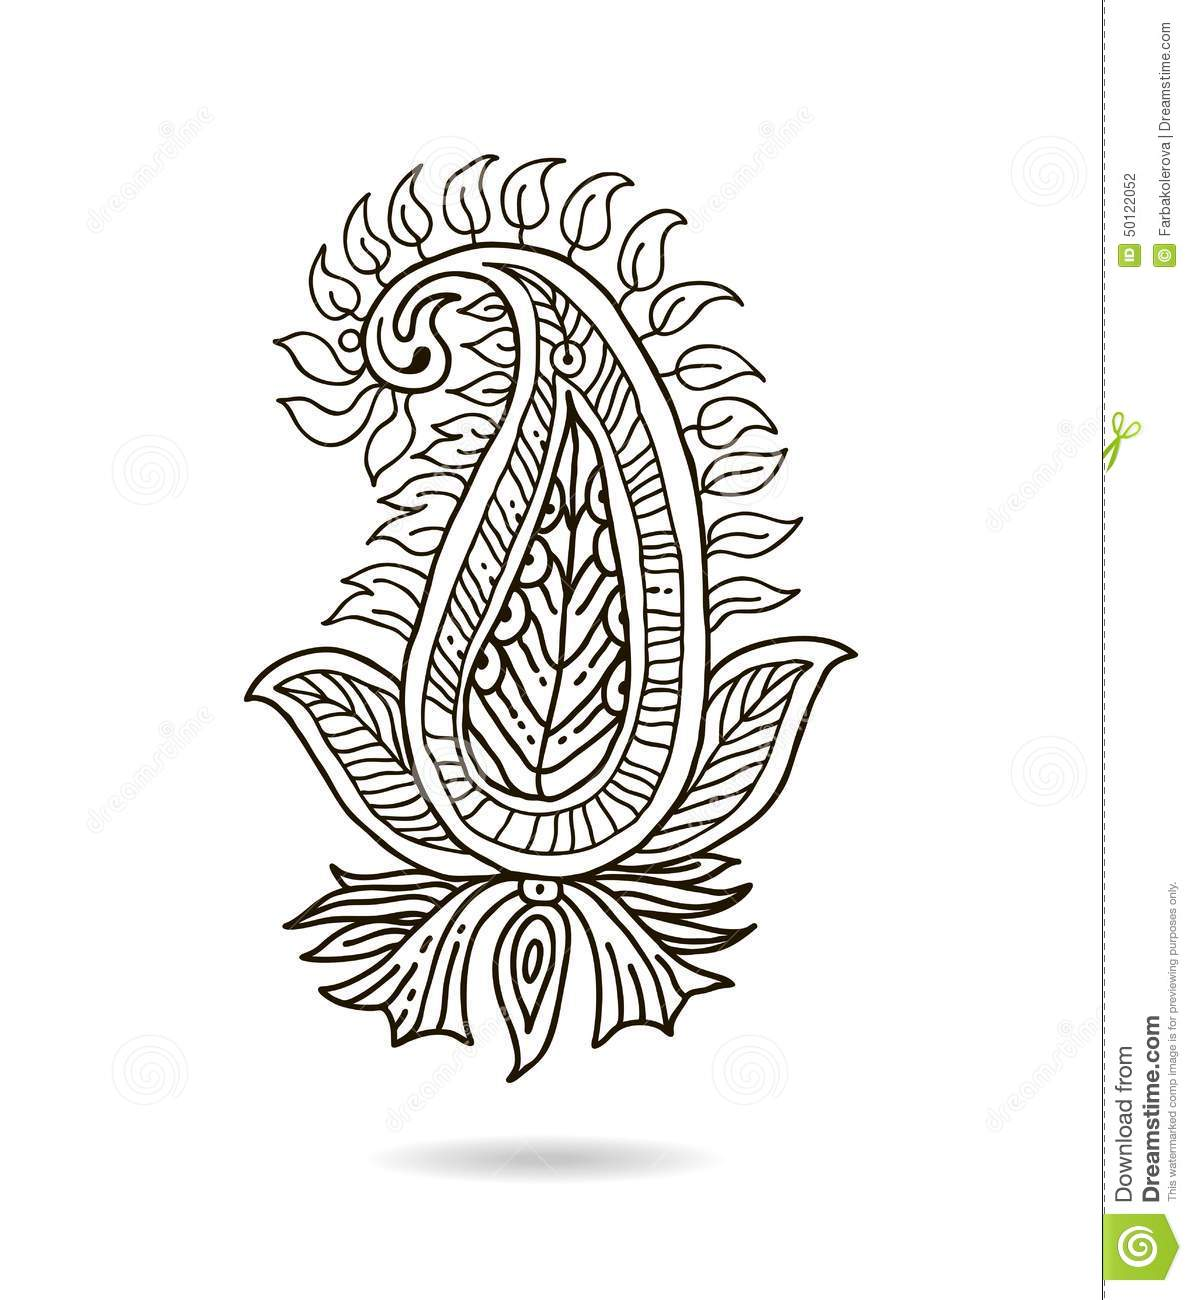 Tree coloring pages only coloring pages - Beautiful Indian Floral Ornament For Your Business Hand Draw Line Art